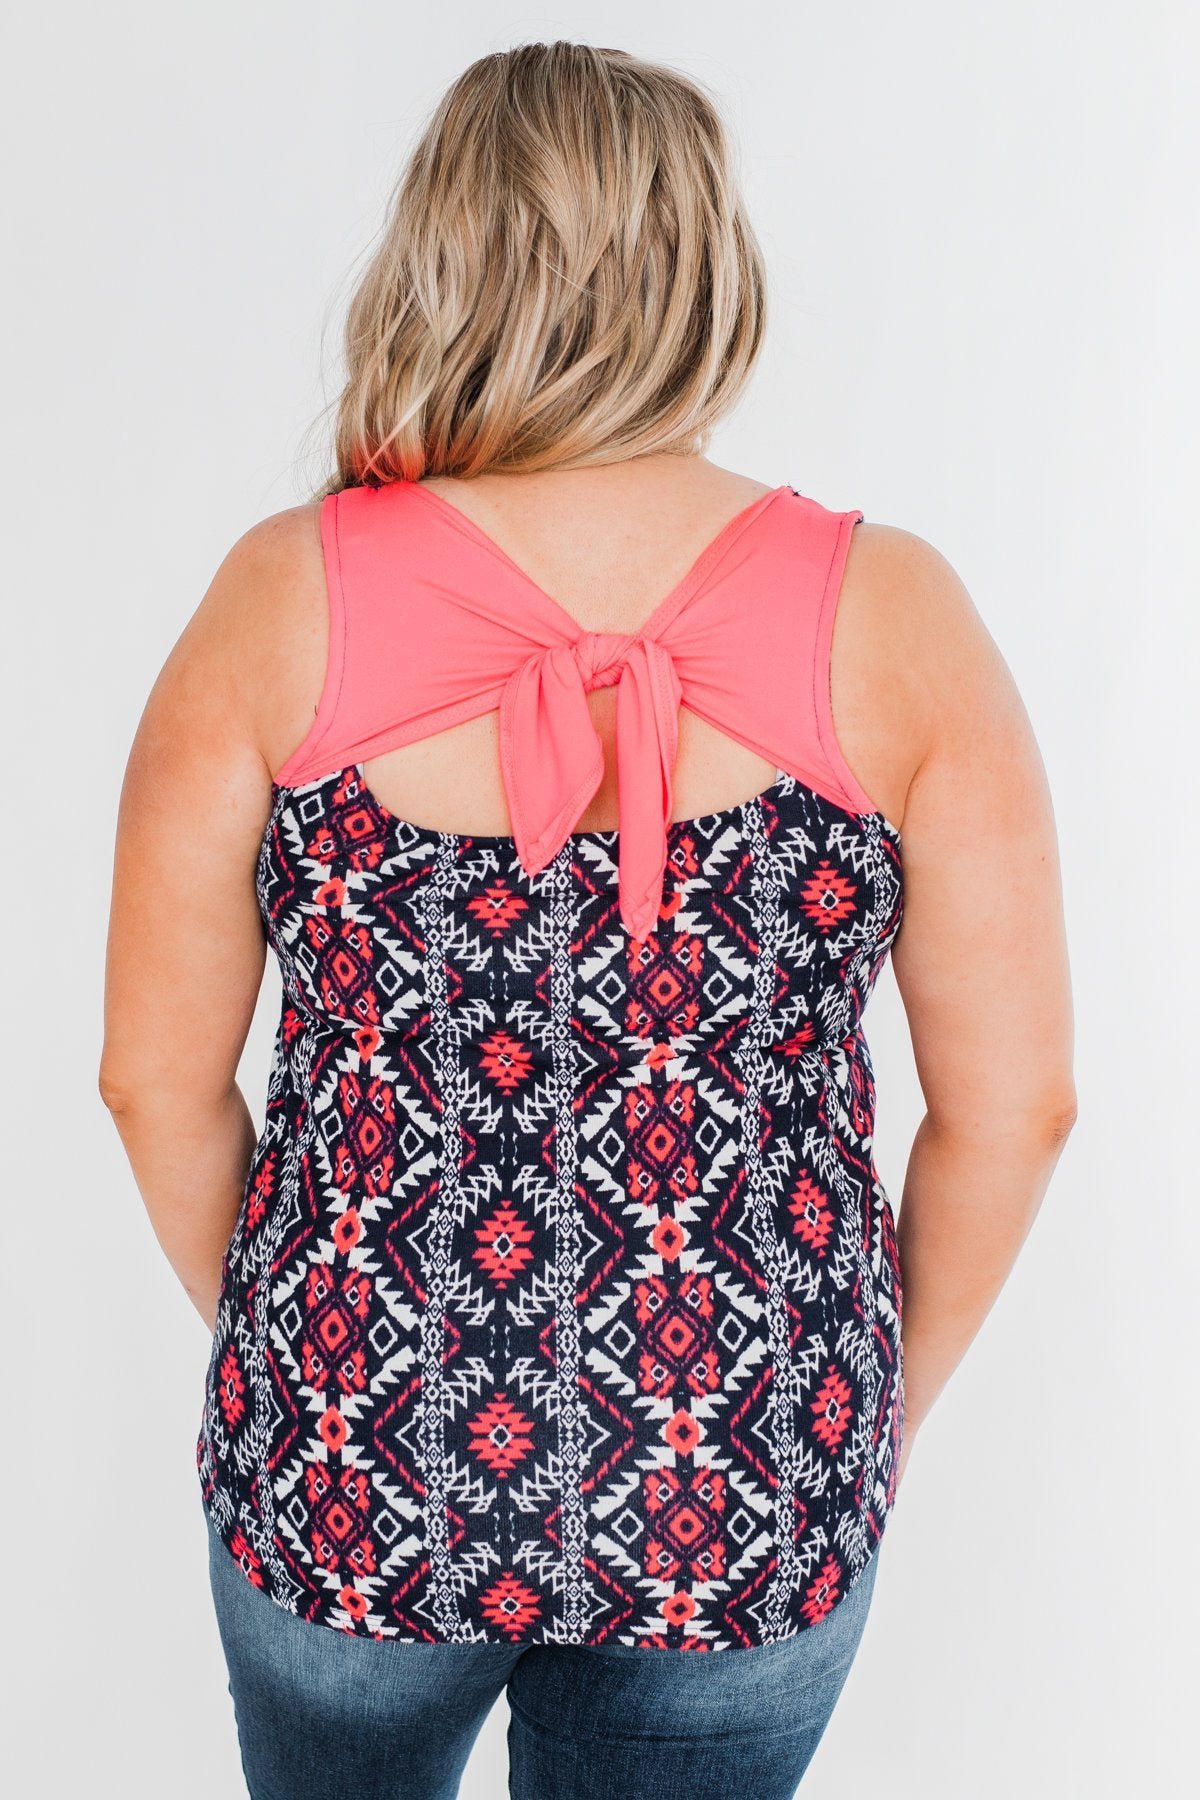 We Found Love Aztec Bow Tank Top- Navy & Neon Pink